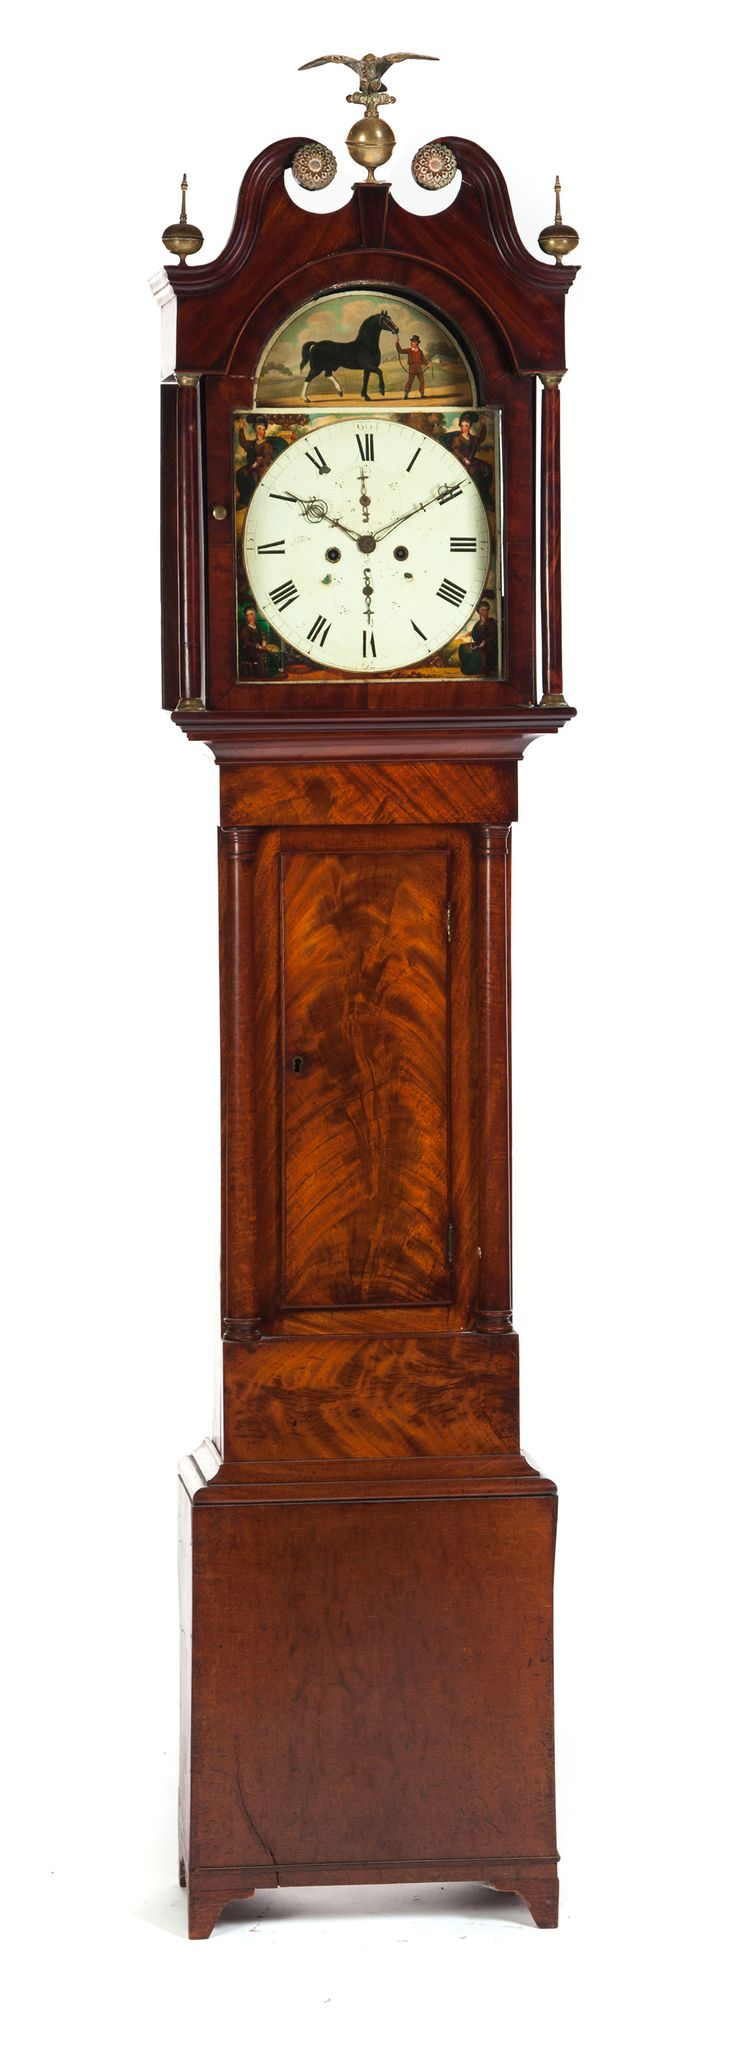 185 best tempus fugit images on pinterest antique clocks garths full details for lot 468 english georgian tall case clock late 18th century amipublicfo Image collections